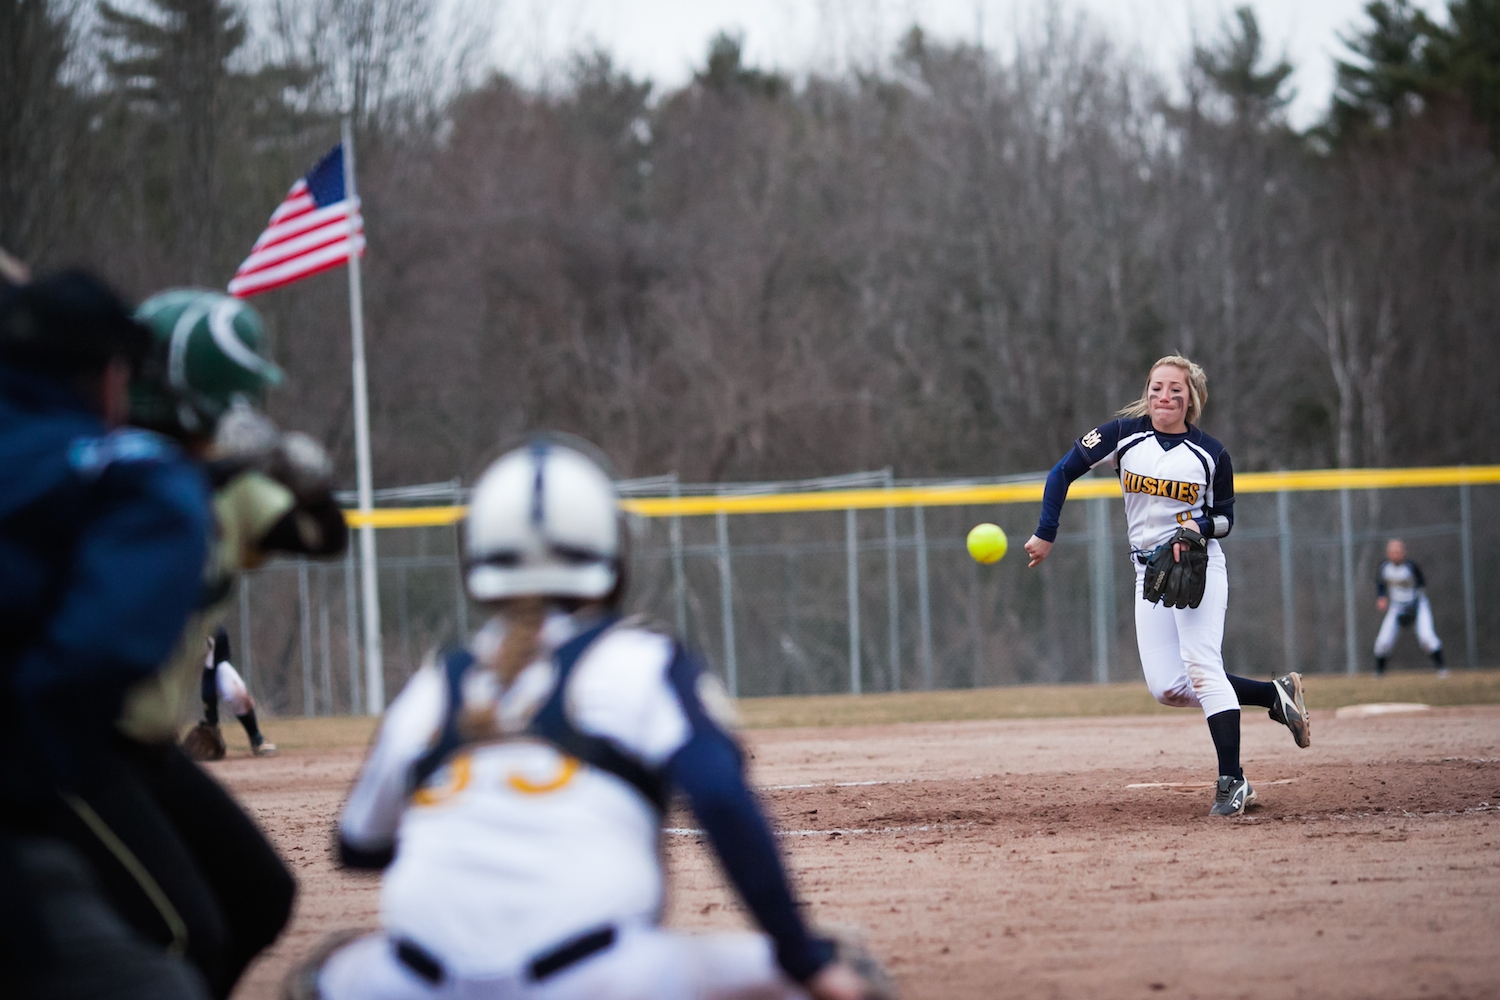 Freshman Amber Kelly of the Huskies hurls a pitch during the fifth inning of the last game of a double header against the Husson U. Eagles at the USM softball field in Gorham, Thursday, April 7, 2016.